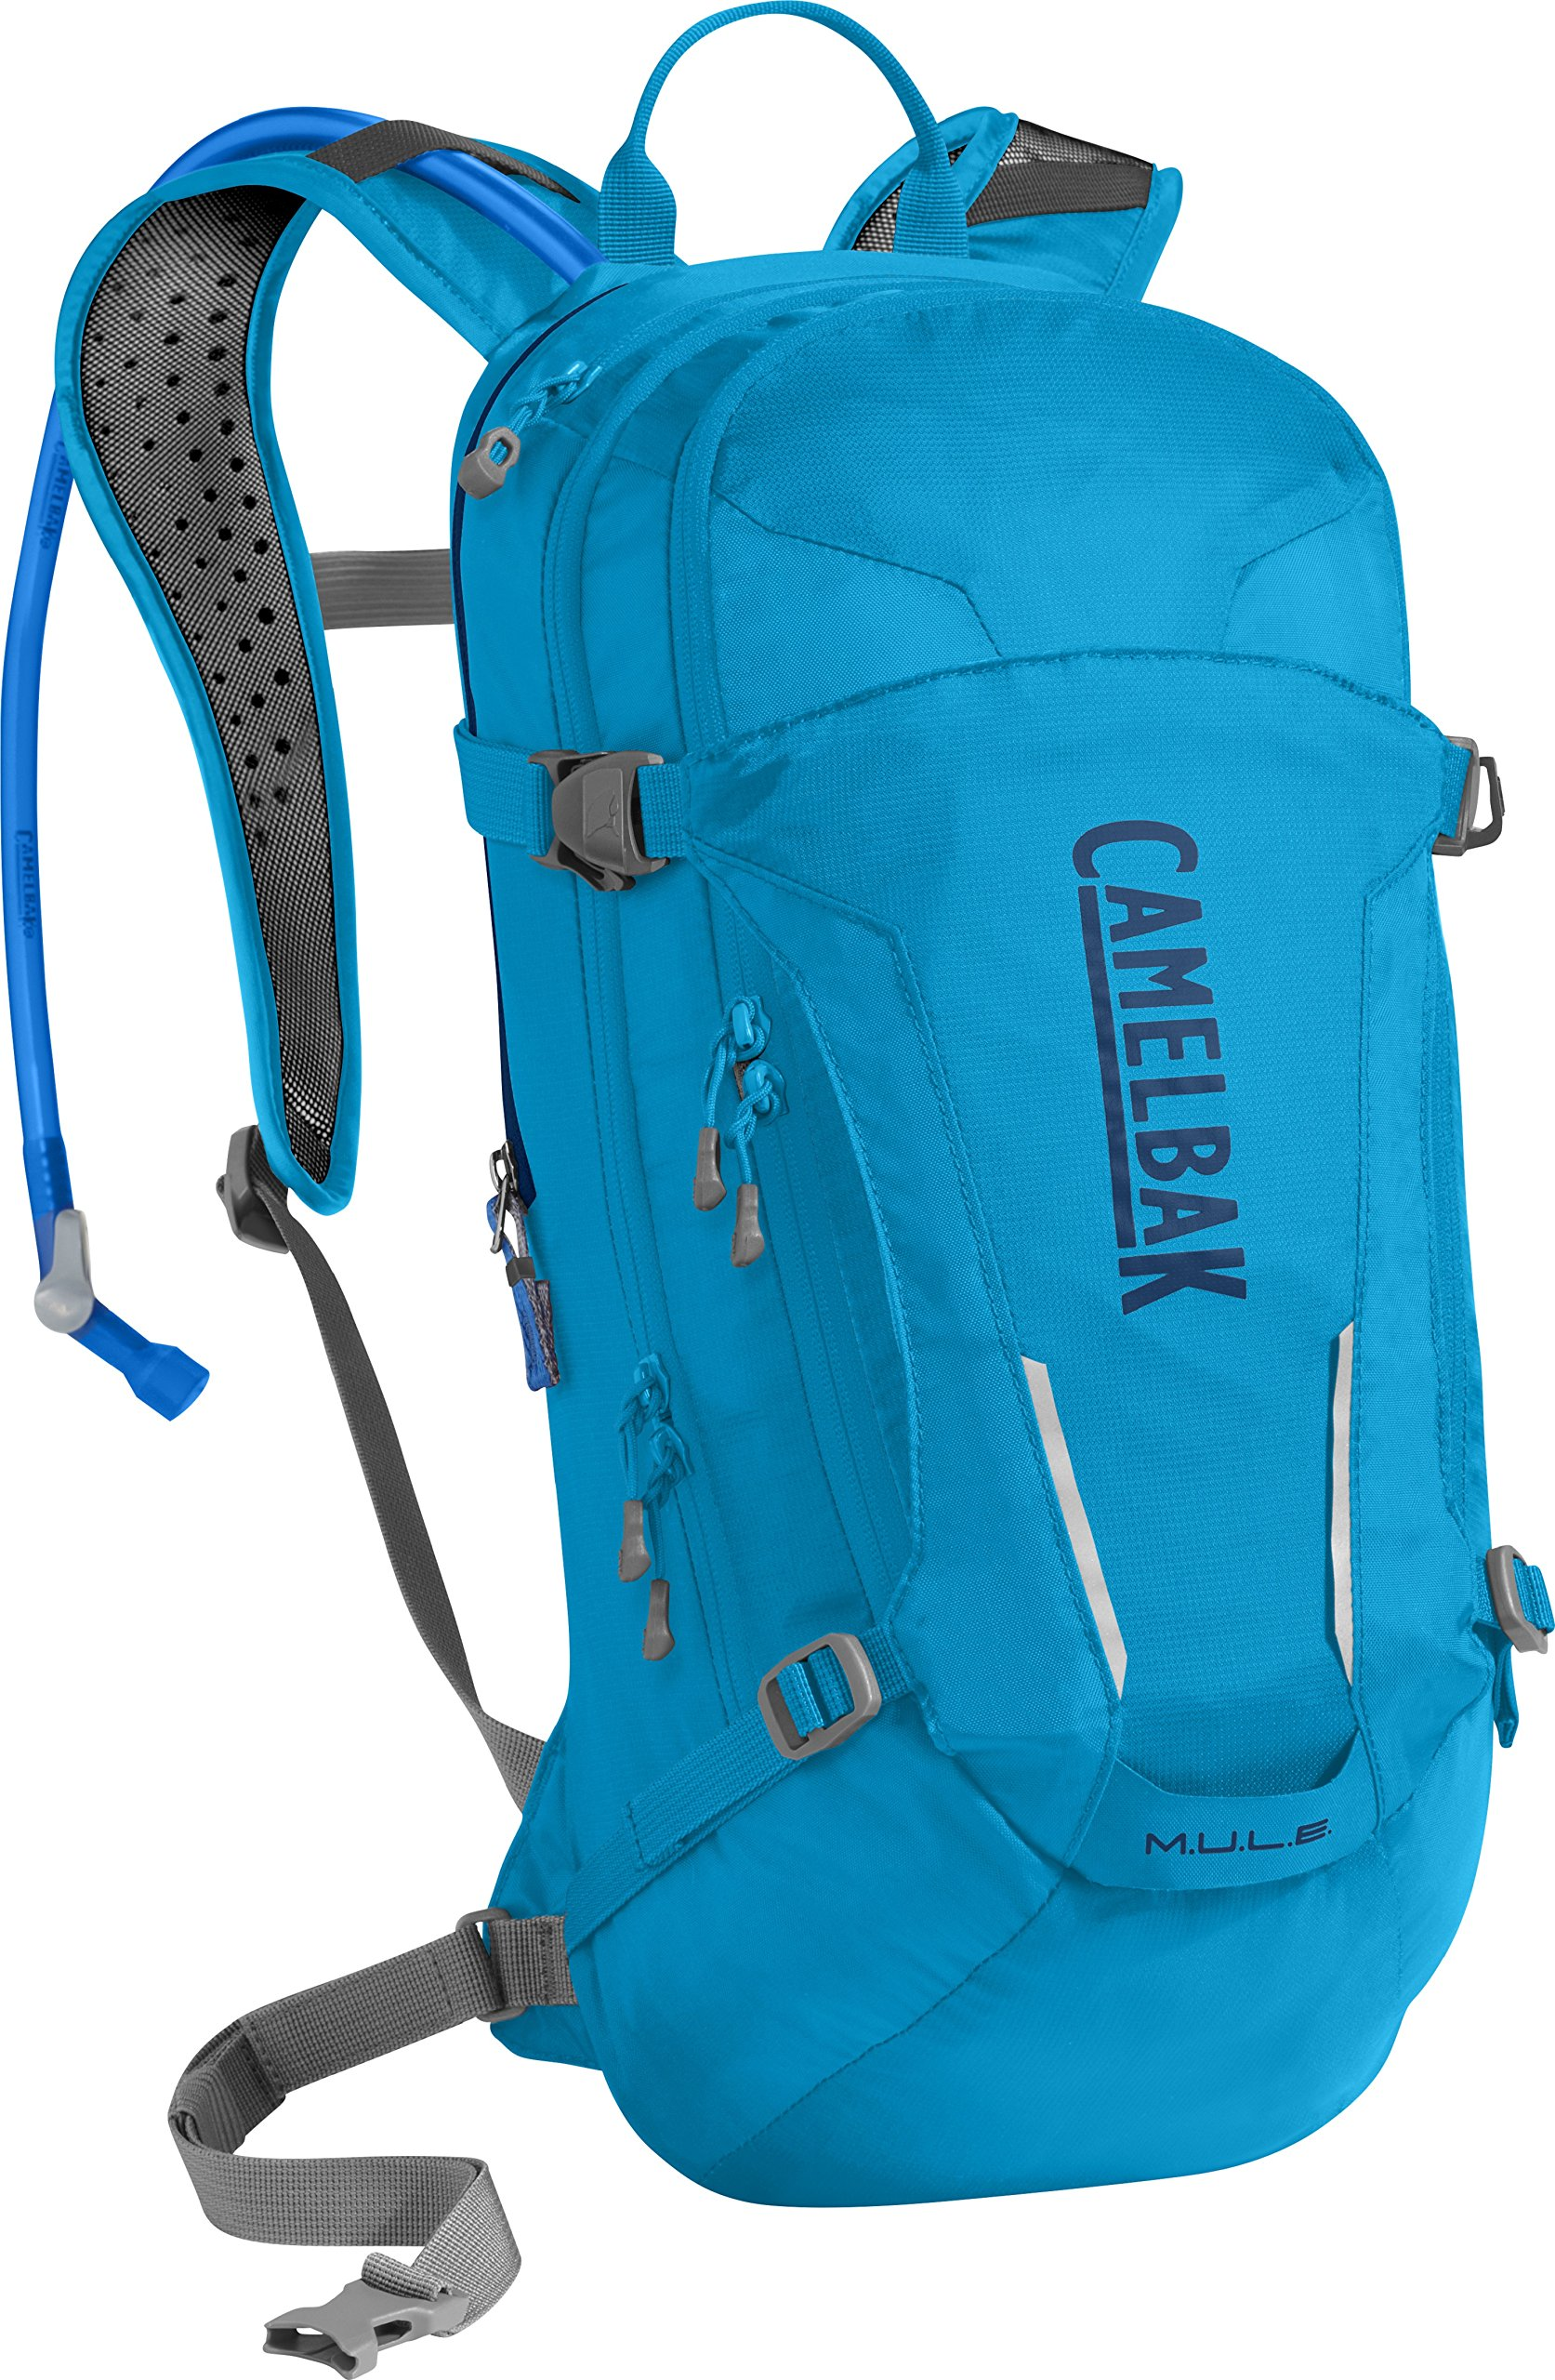 CamelBak M.U.L.E. Crux Reservoir Hydration Pack, Atomic Blue/Pitch Blue, 3 L/100 oz by CamelBak